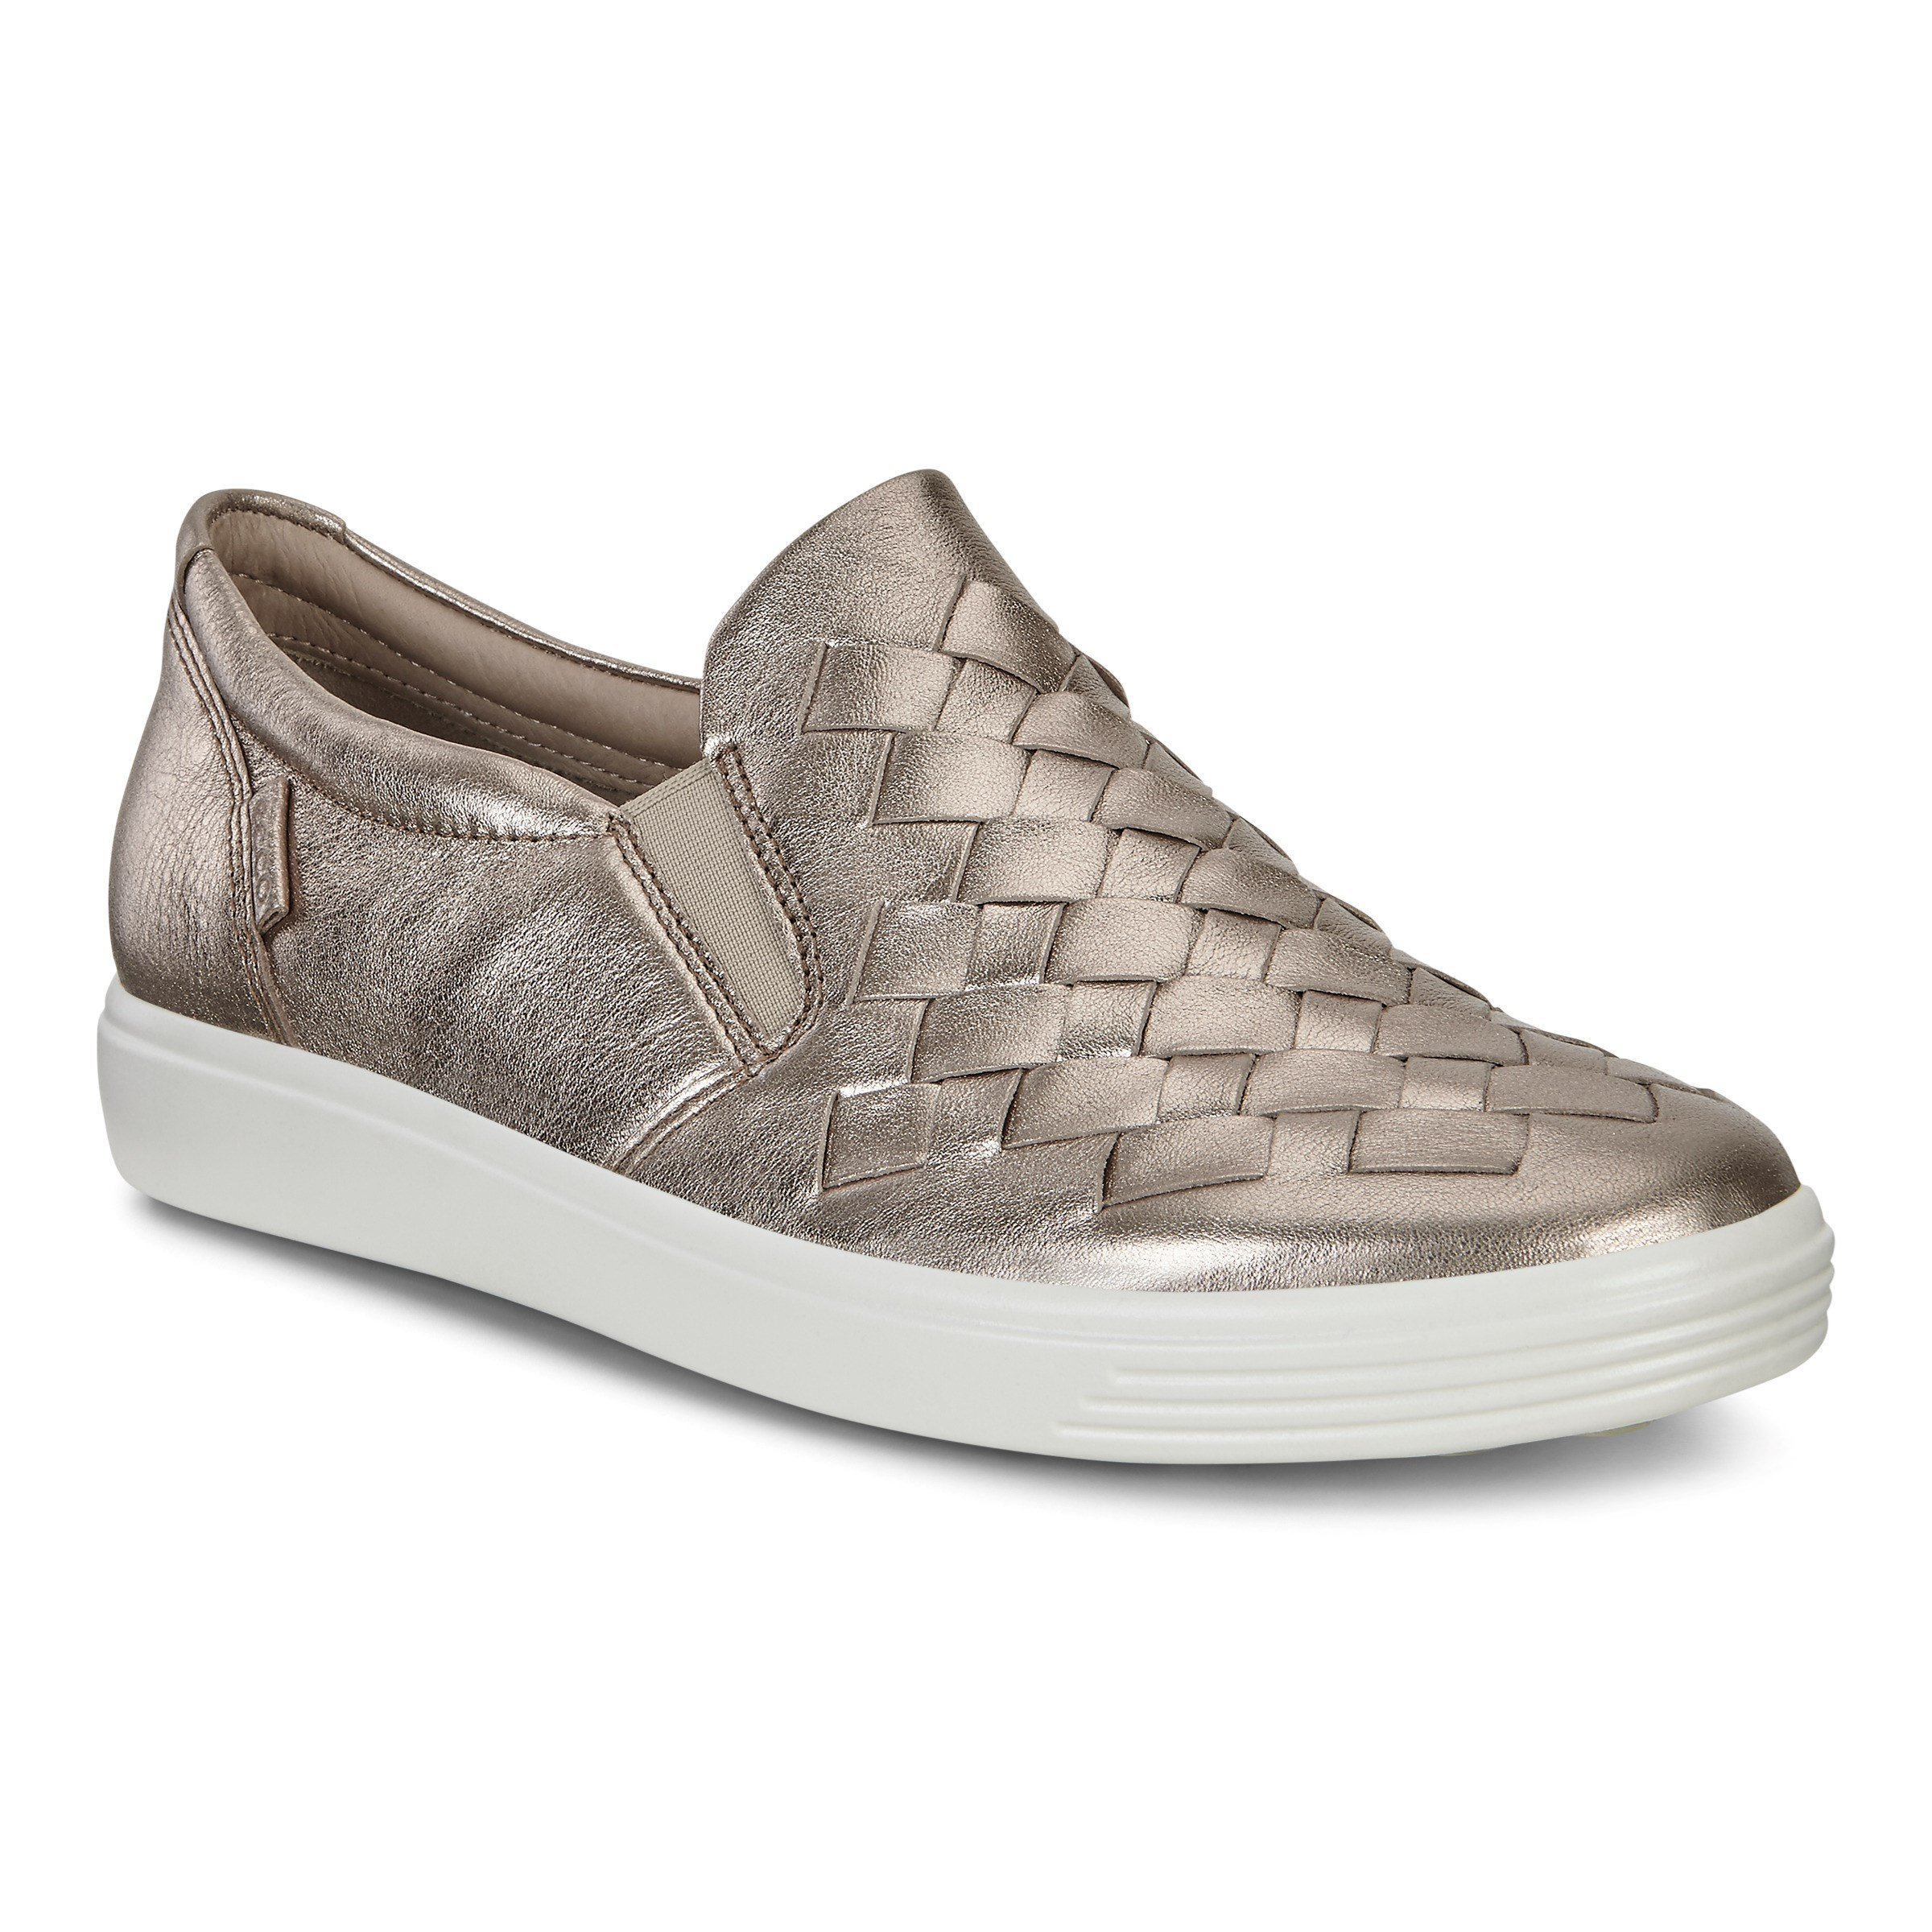 Ecco 430453-01375 SOFT 7 W WARM GREY LYRA METALLIC